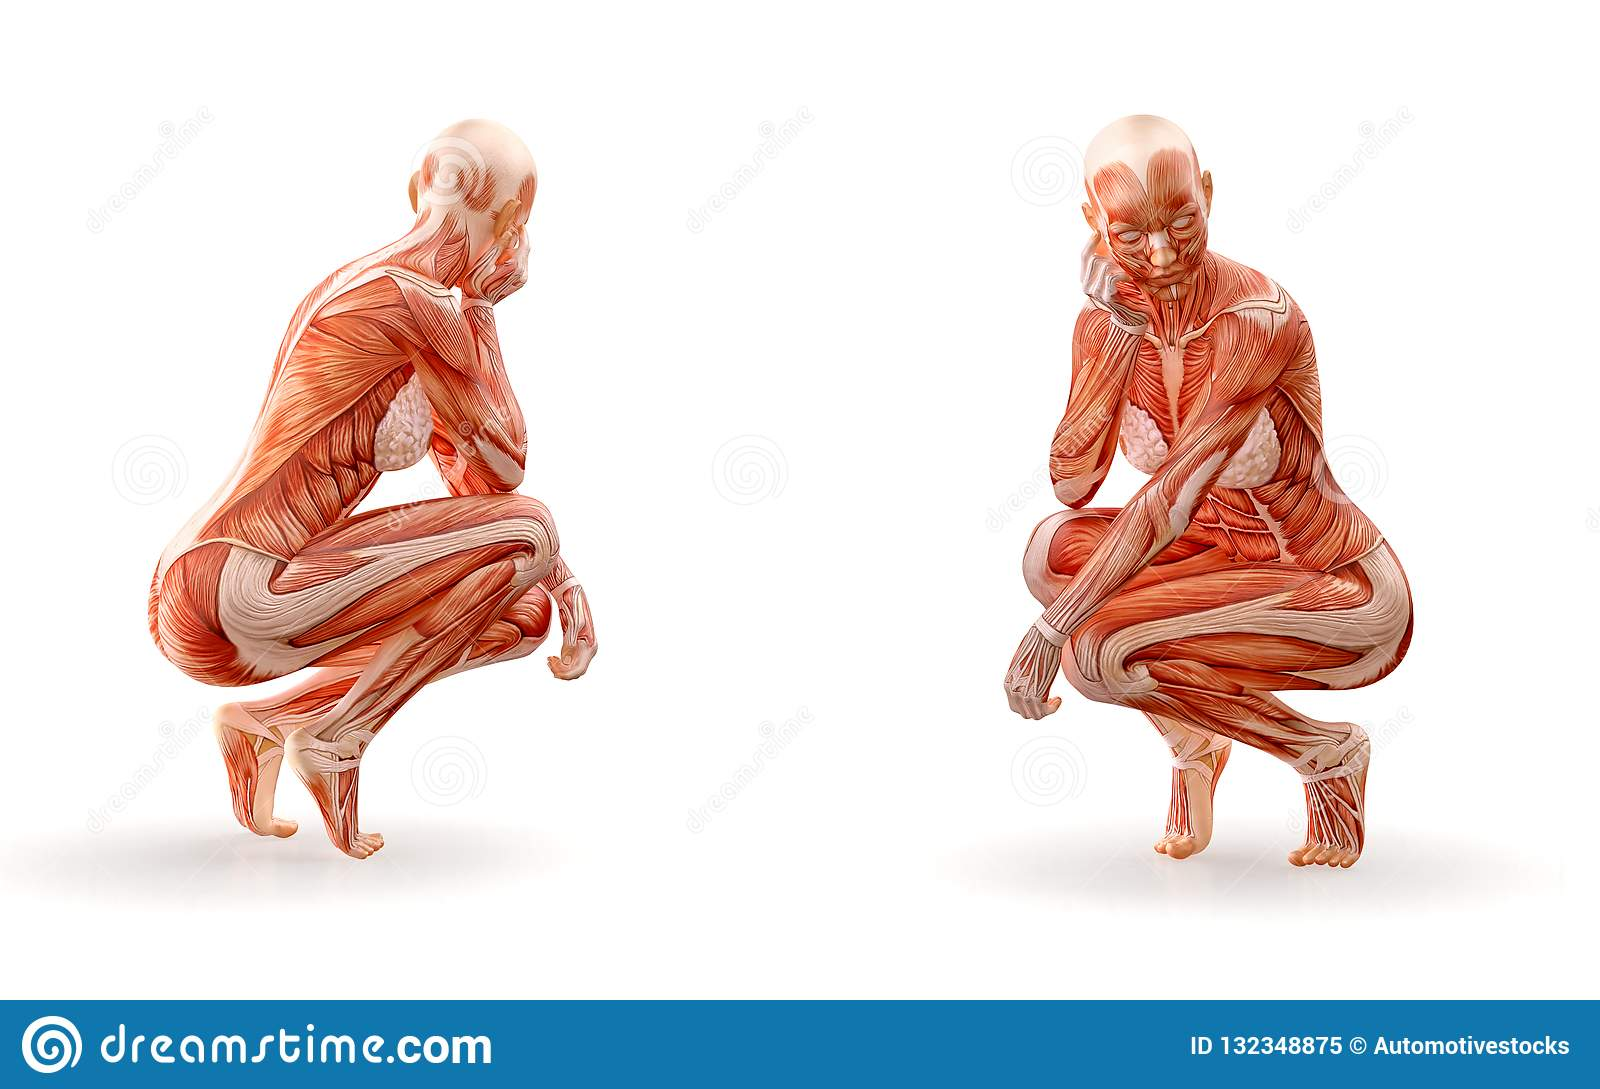 Muscles anatomy female figure workout, isolated. Healthcare, fitness, dancing, diet and sport concept. 3D illustration